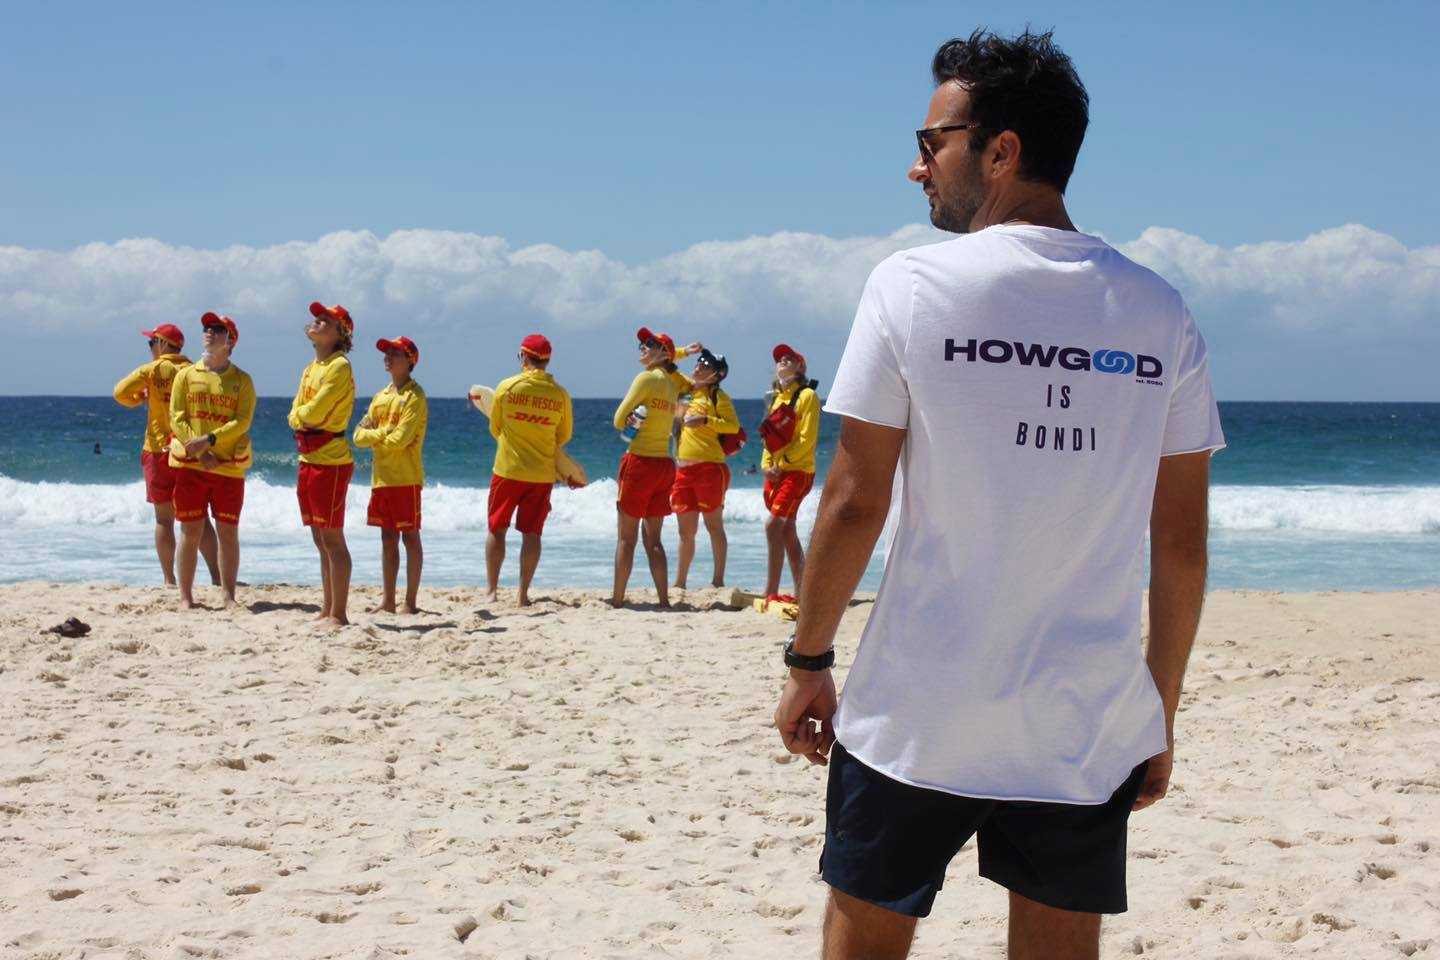 WAYS and THE HOWGOOD COMPANY partnering to help support Bondi youth and families.